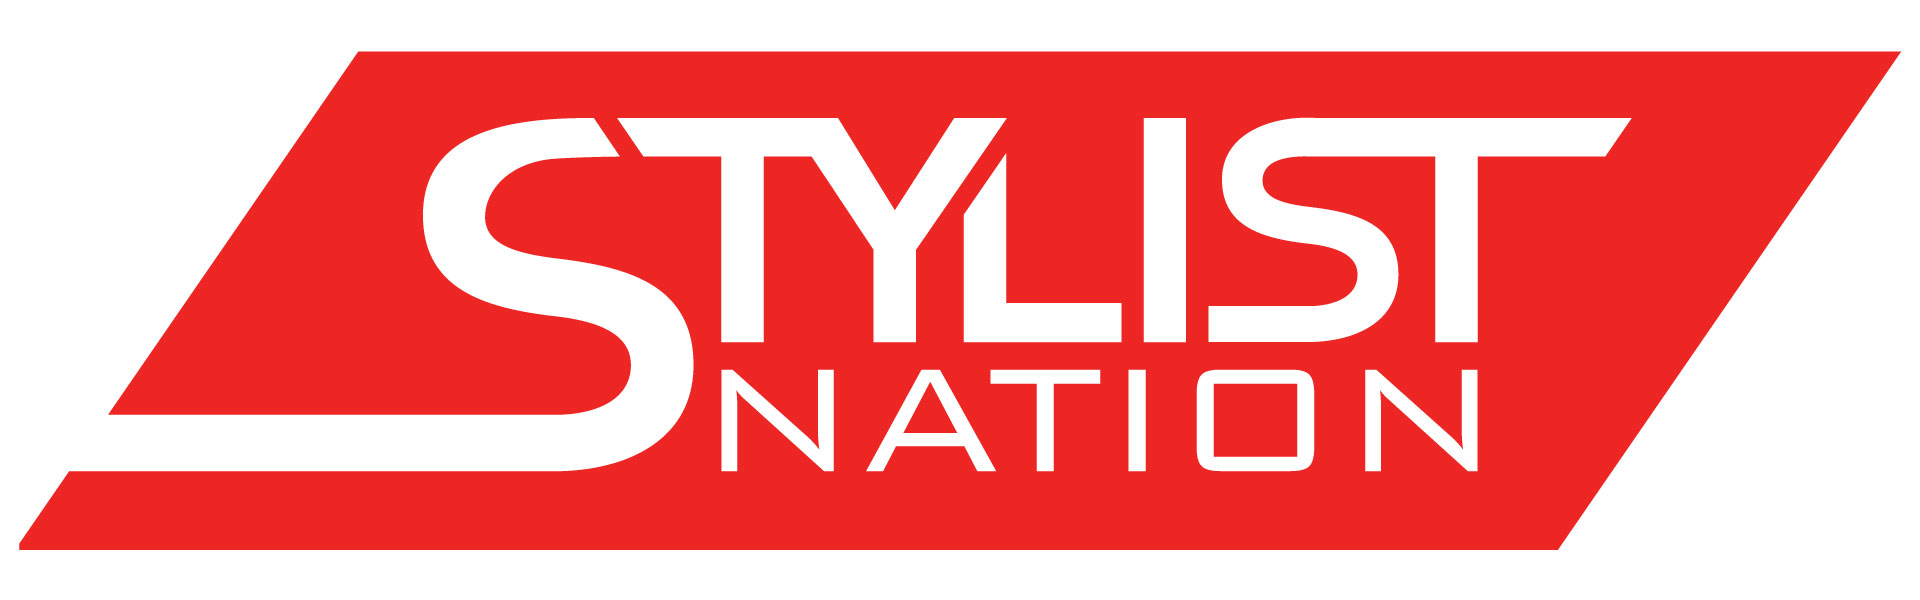 Stylist Nation logo